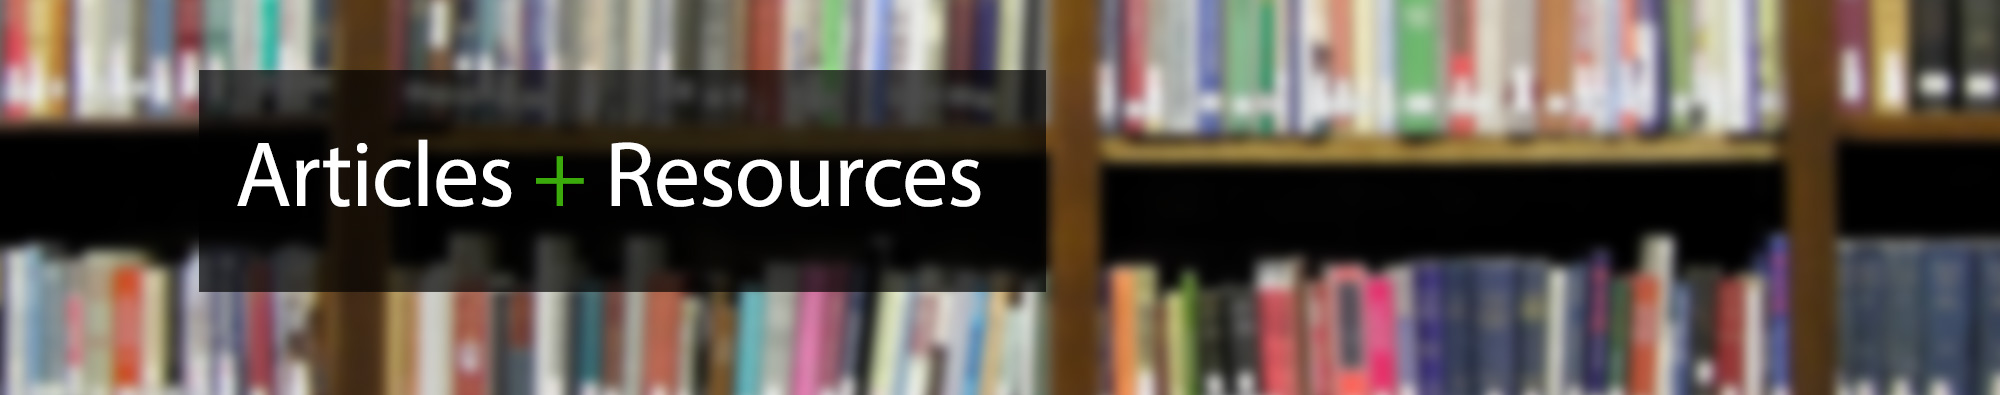 Articles Resources Banner2